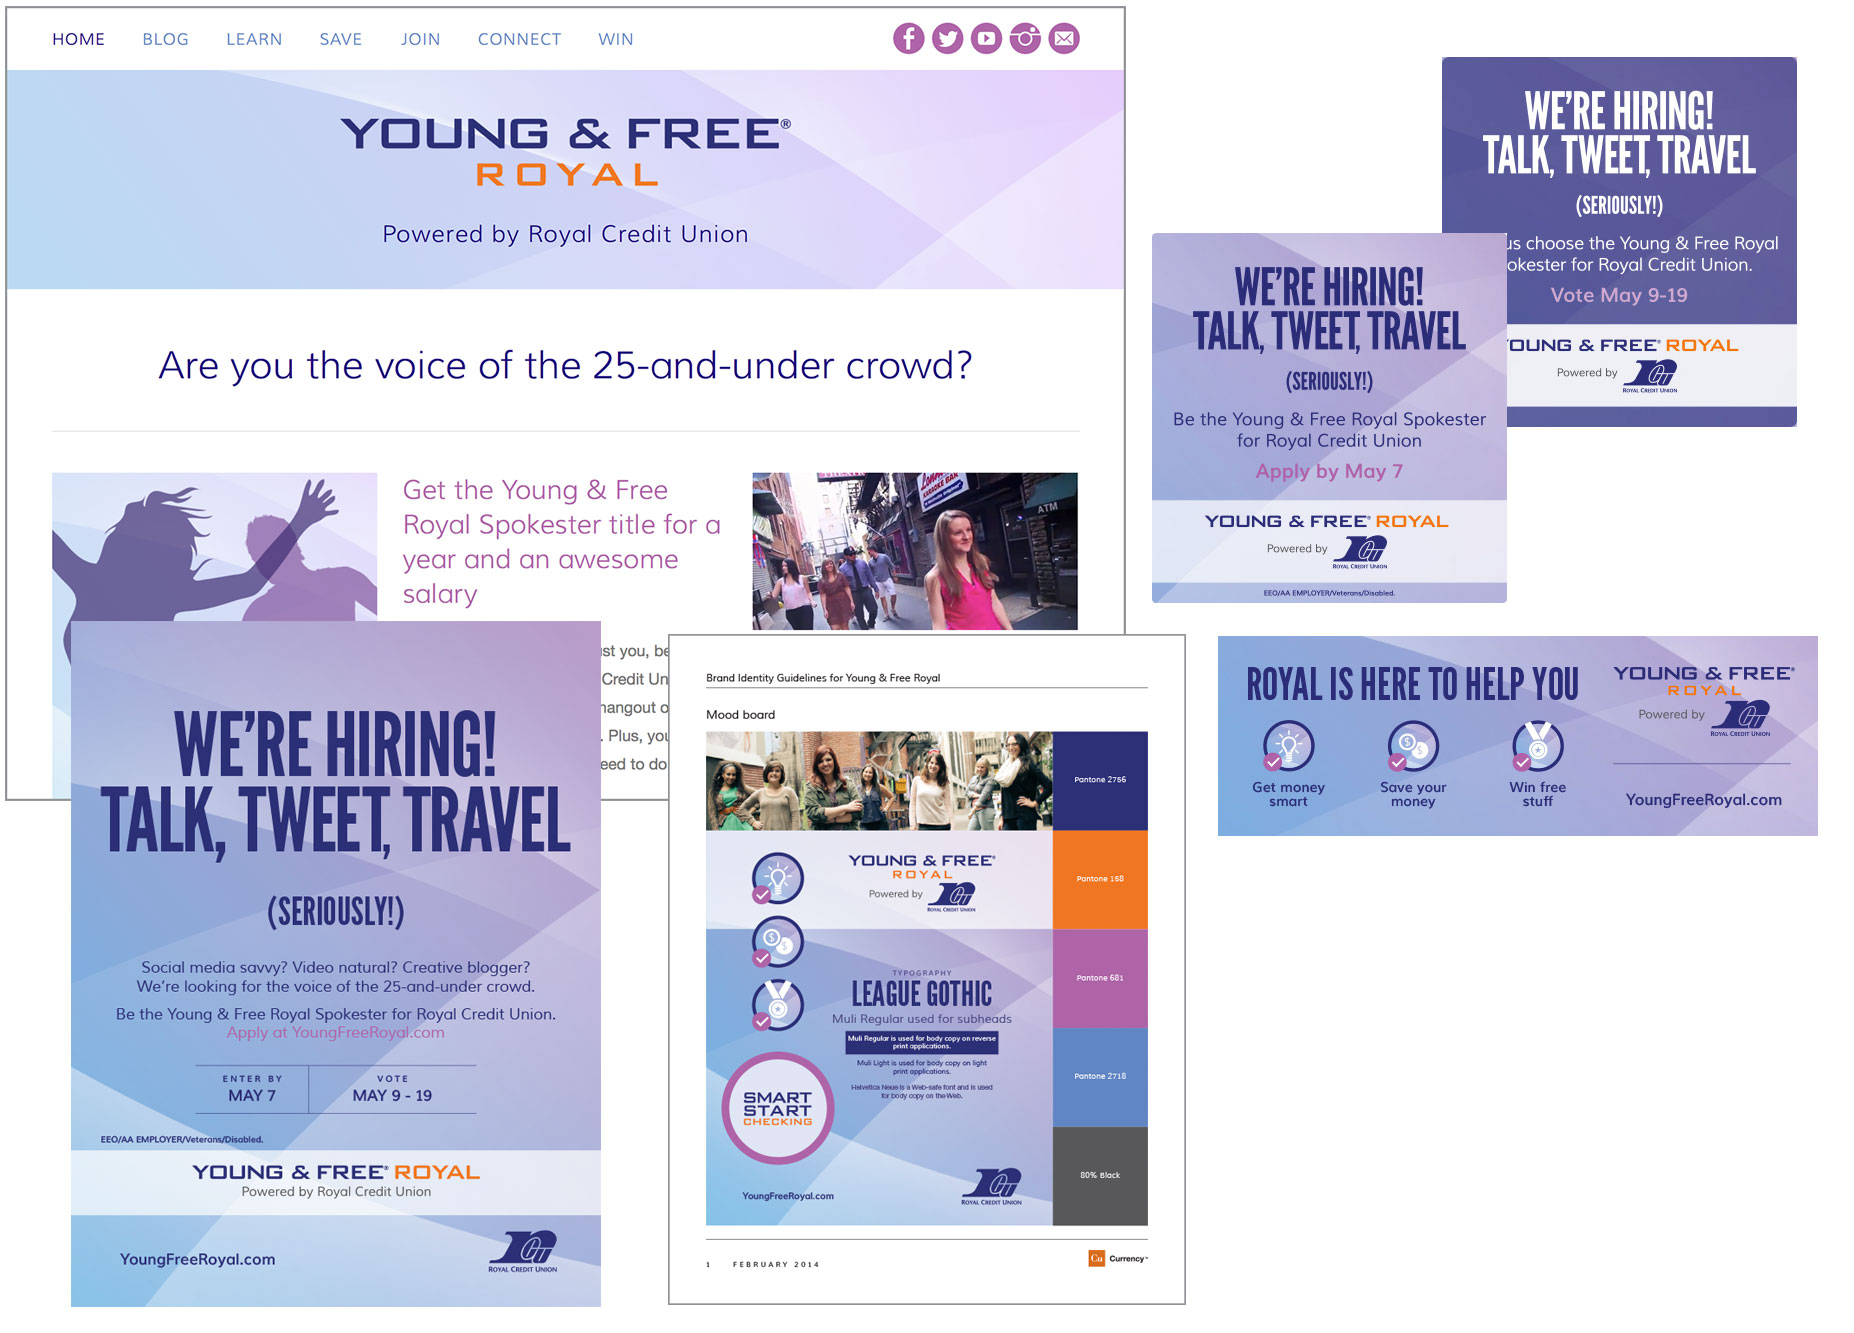 A few of the Young & Free Royal campaign elements